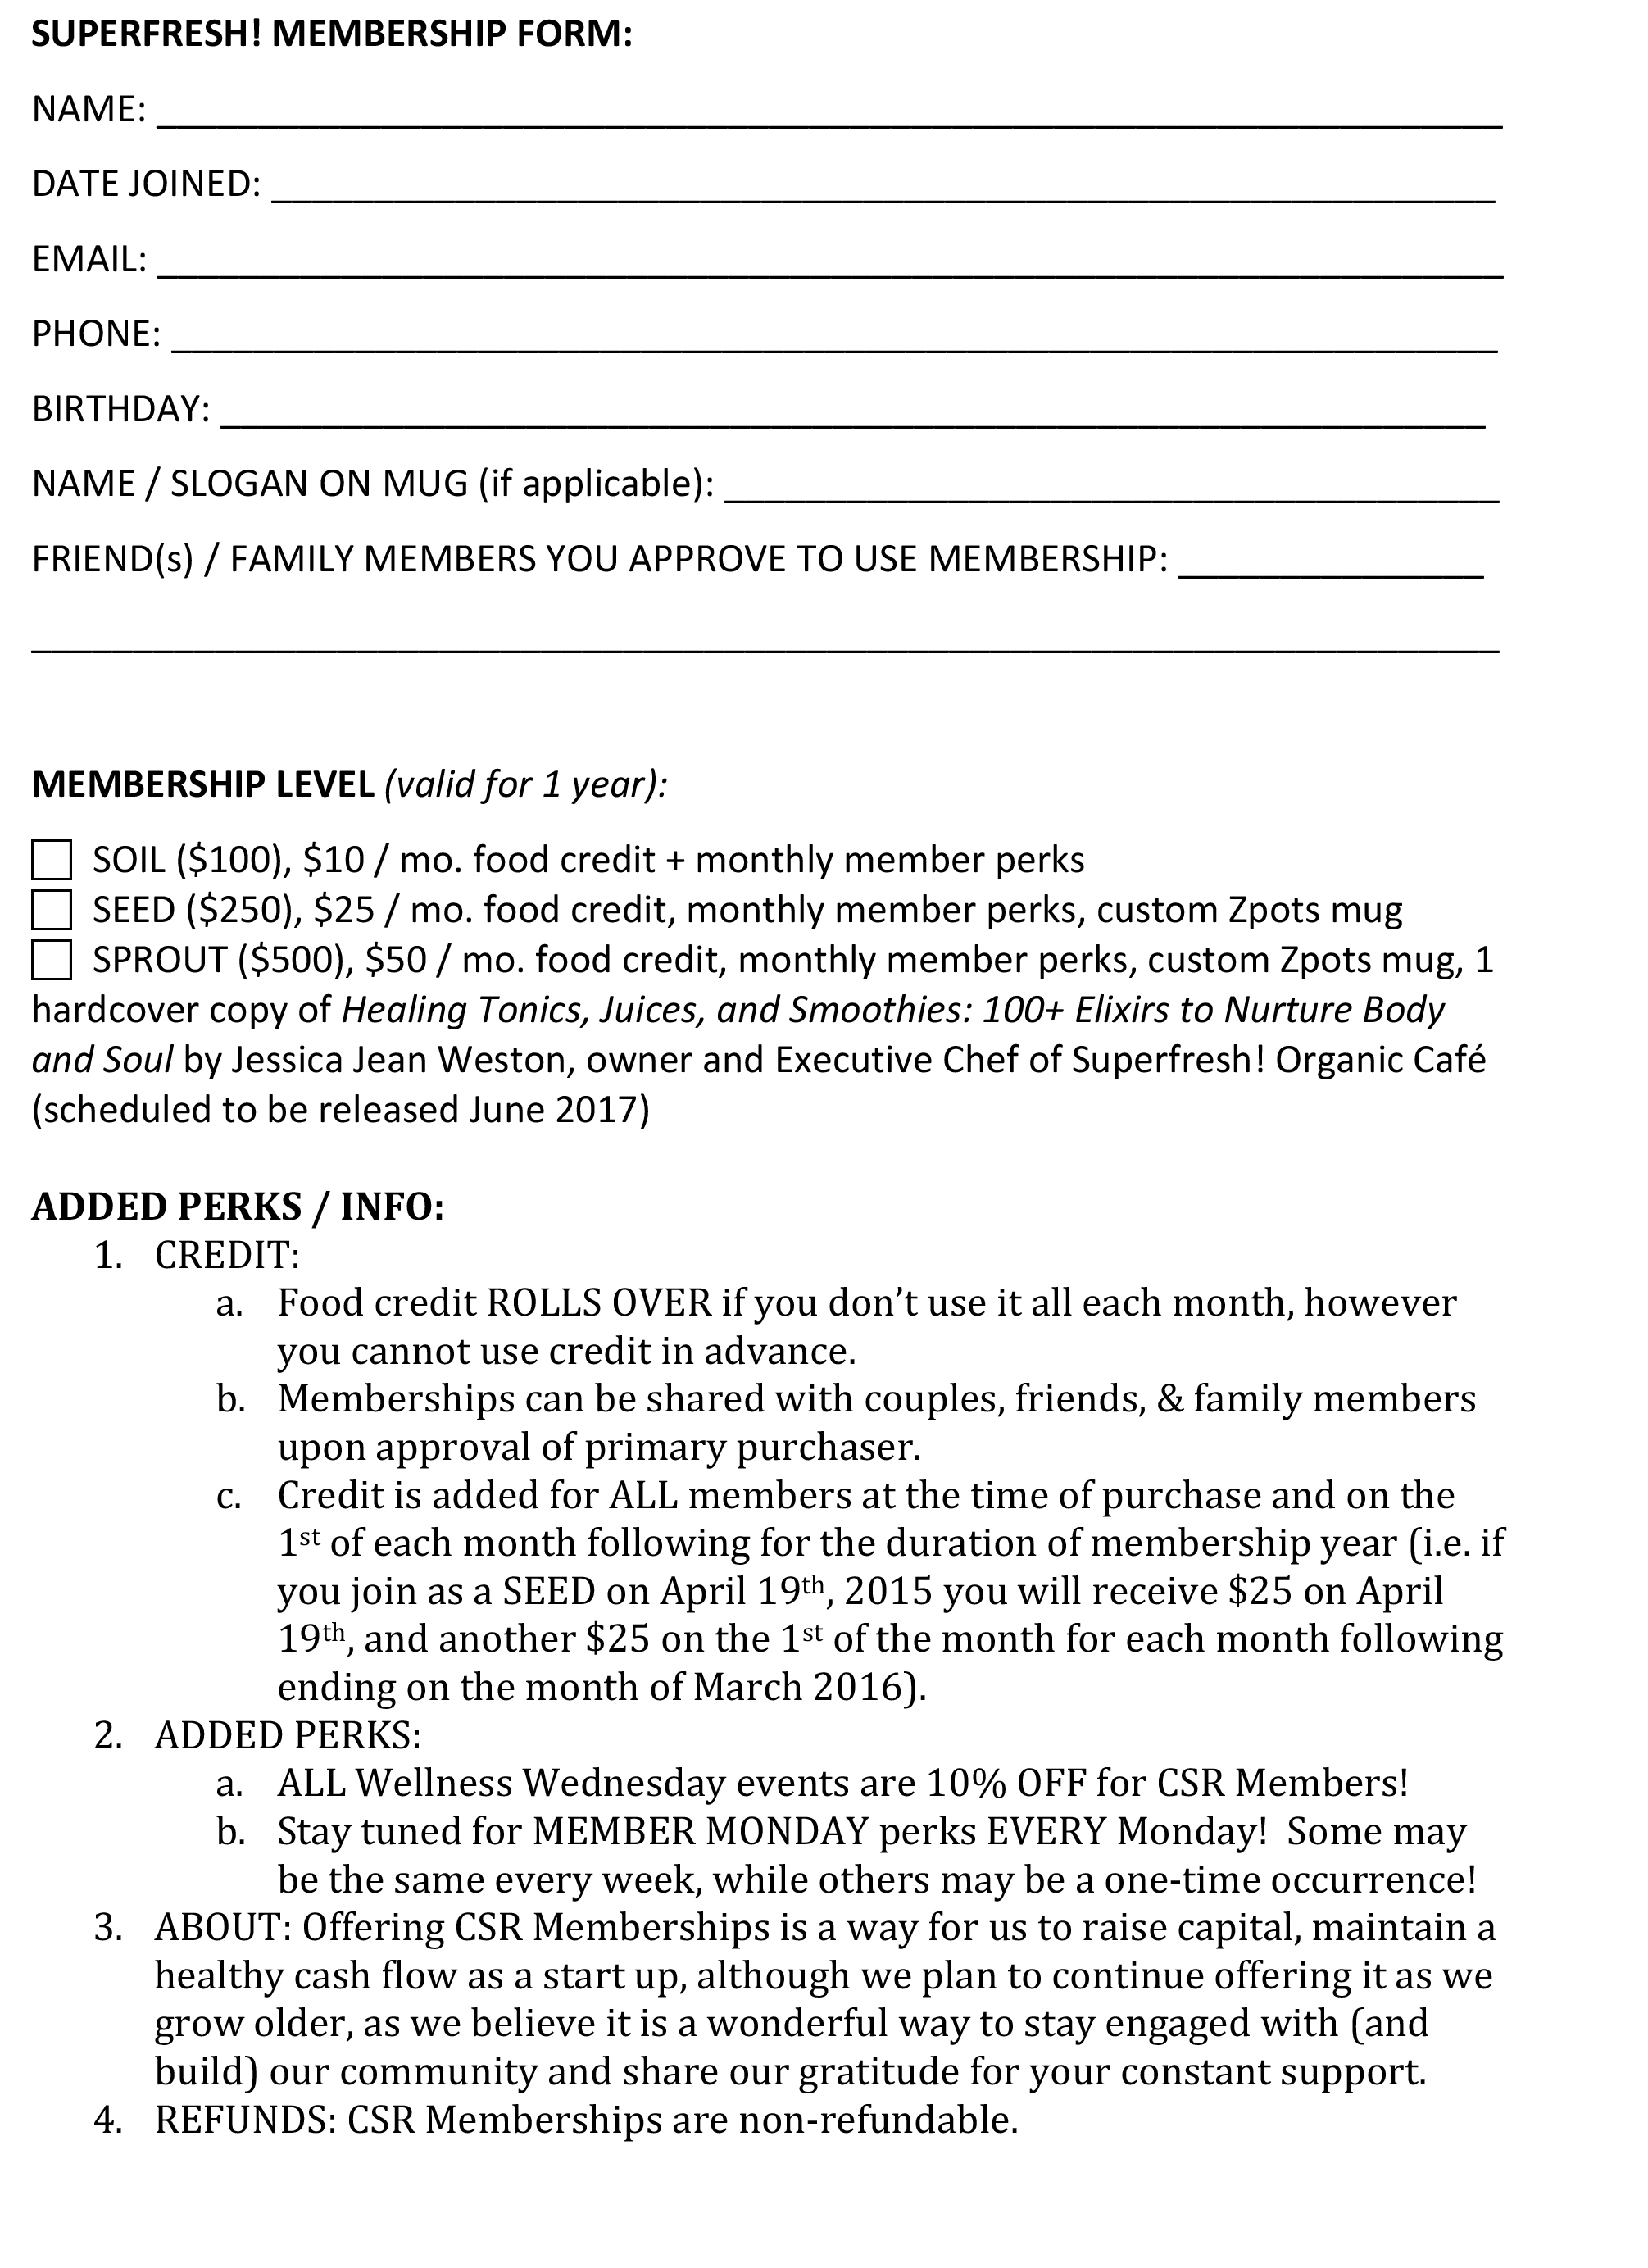 Microsoft Word - 2016 MEMBERSHIP FORM.docx